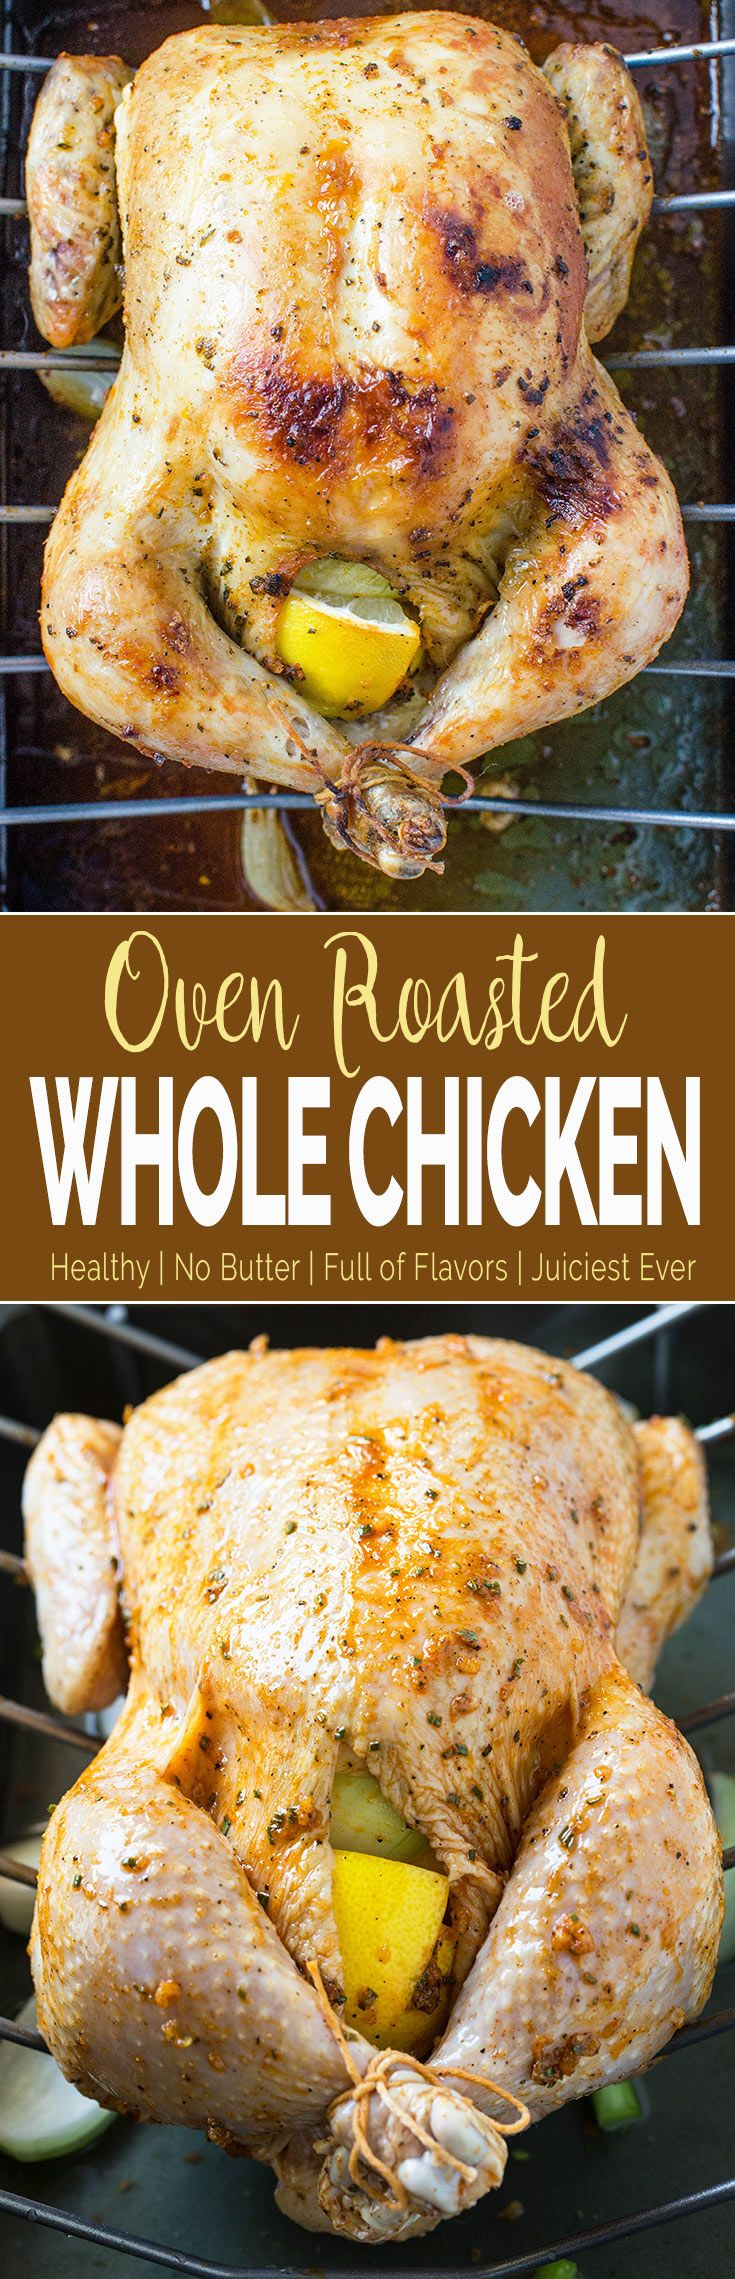 Learn to make perfect super juicy garlic & herb roasted whole chicken in the oven. Quick preparation & tons of flavors with delicious gravy prepared using pan drippings. #chicken #thanksgiving #healthyrecipes  via @watchwhatueat